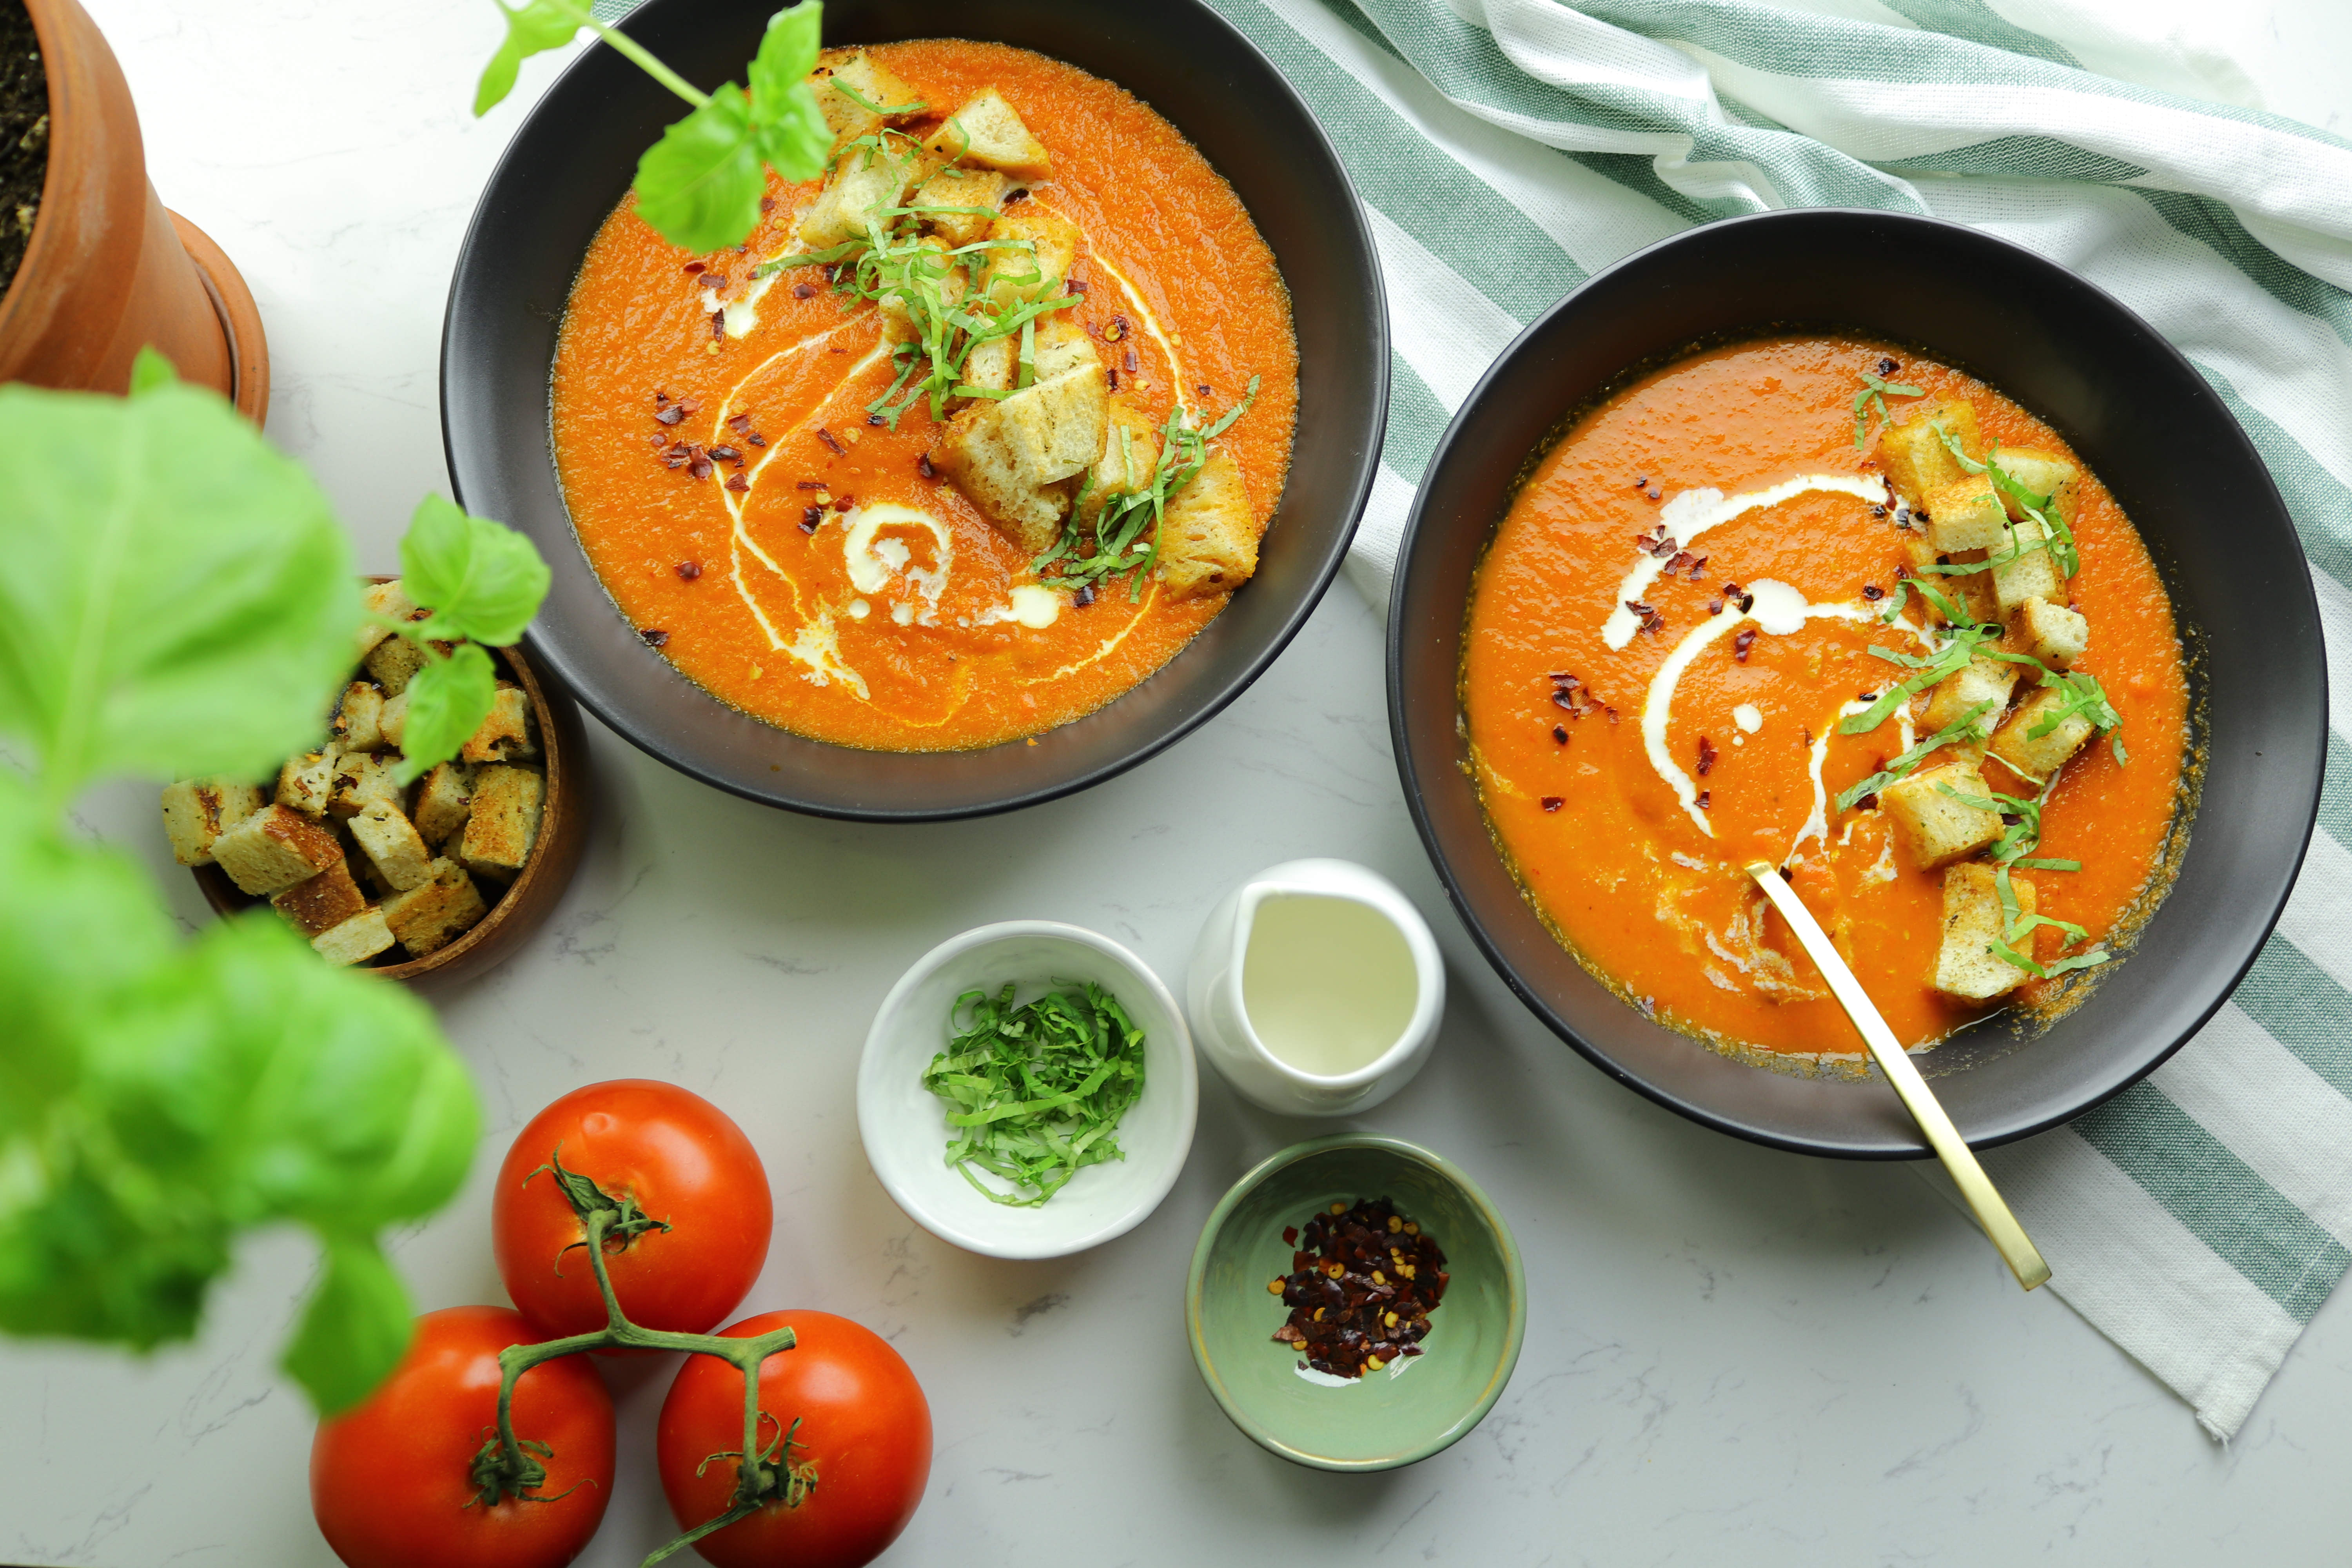 Roasted carrot and tomato soup